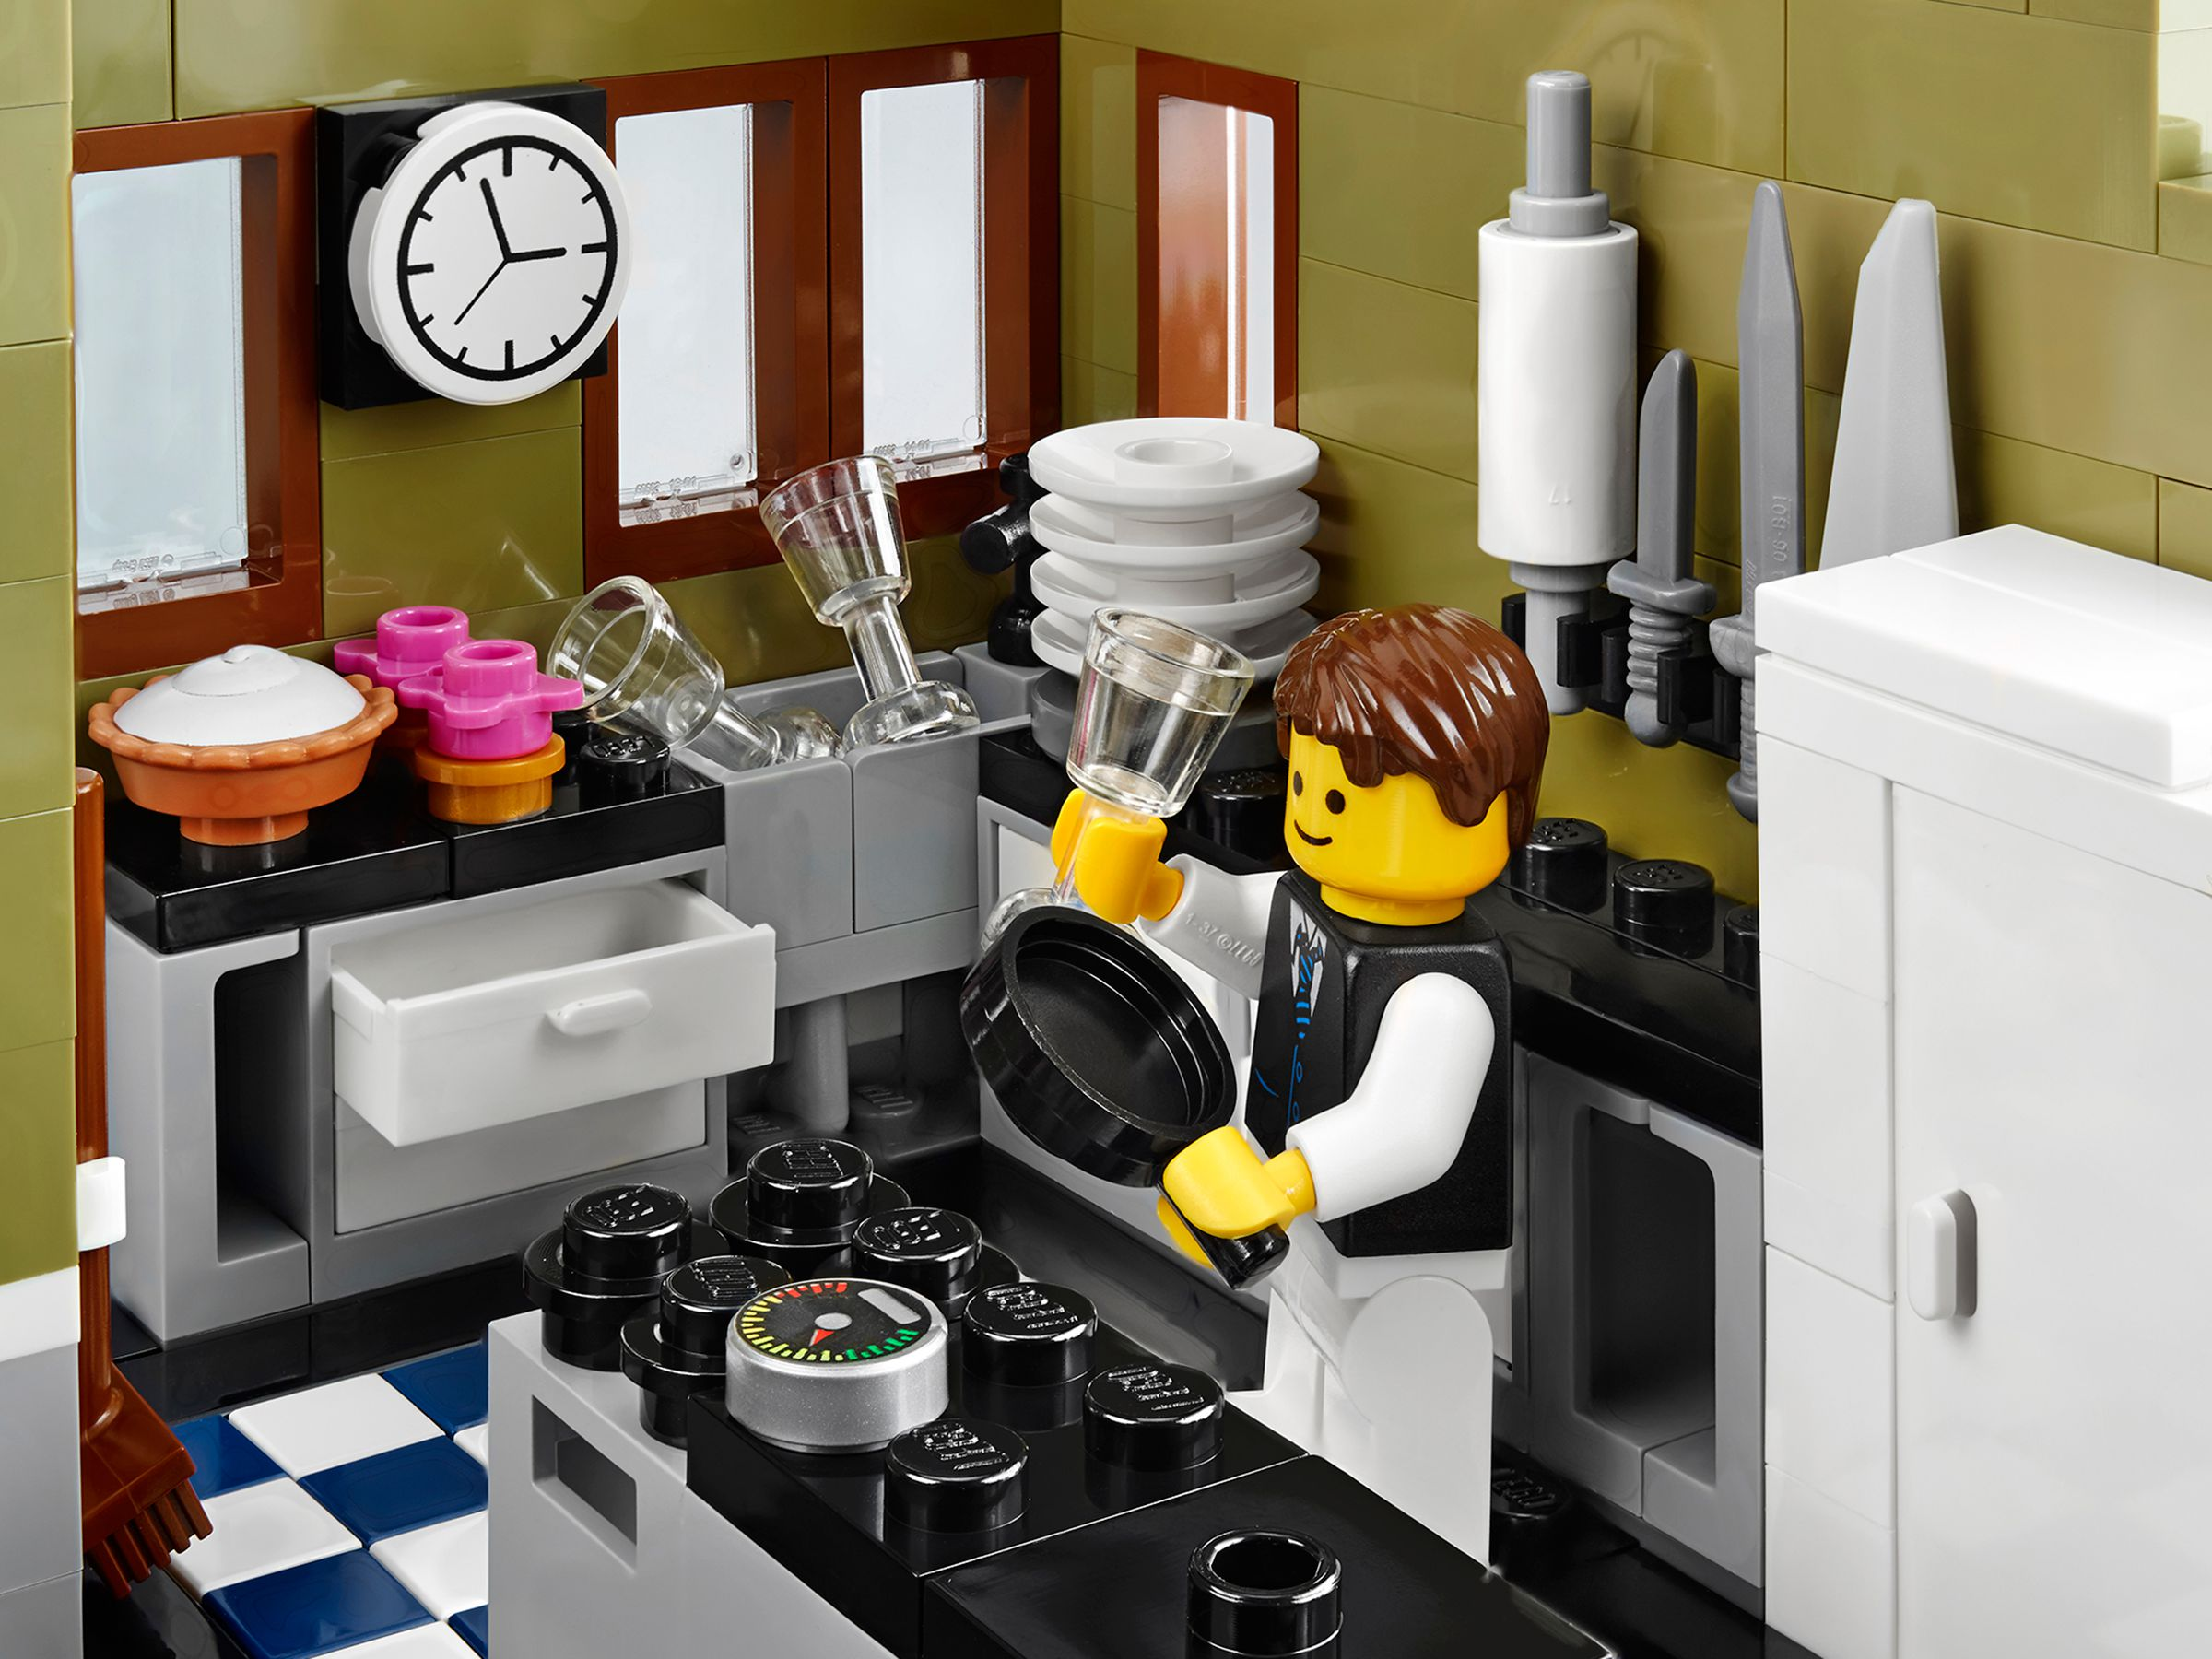 LEGO Advanced Models 10243 Pariser Restaurant LEGO_10243_alt8.jpg